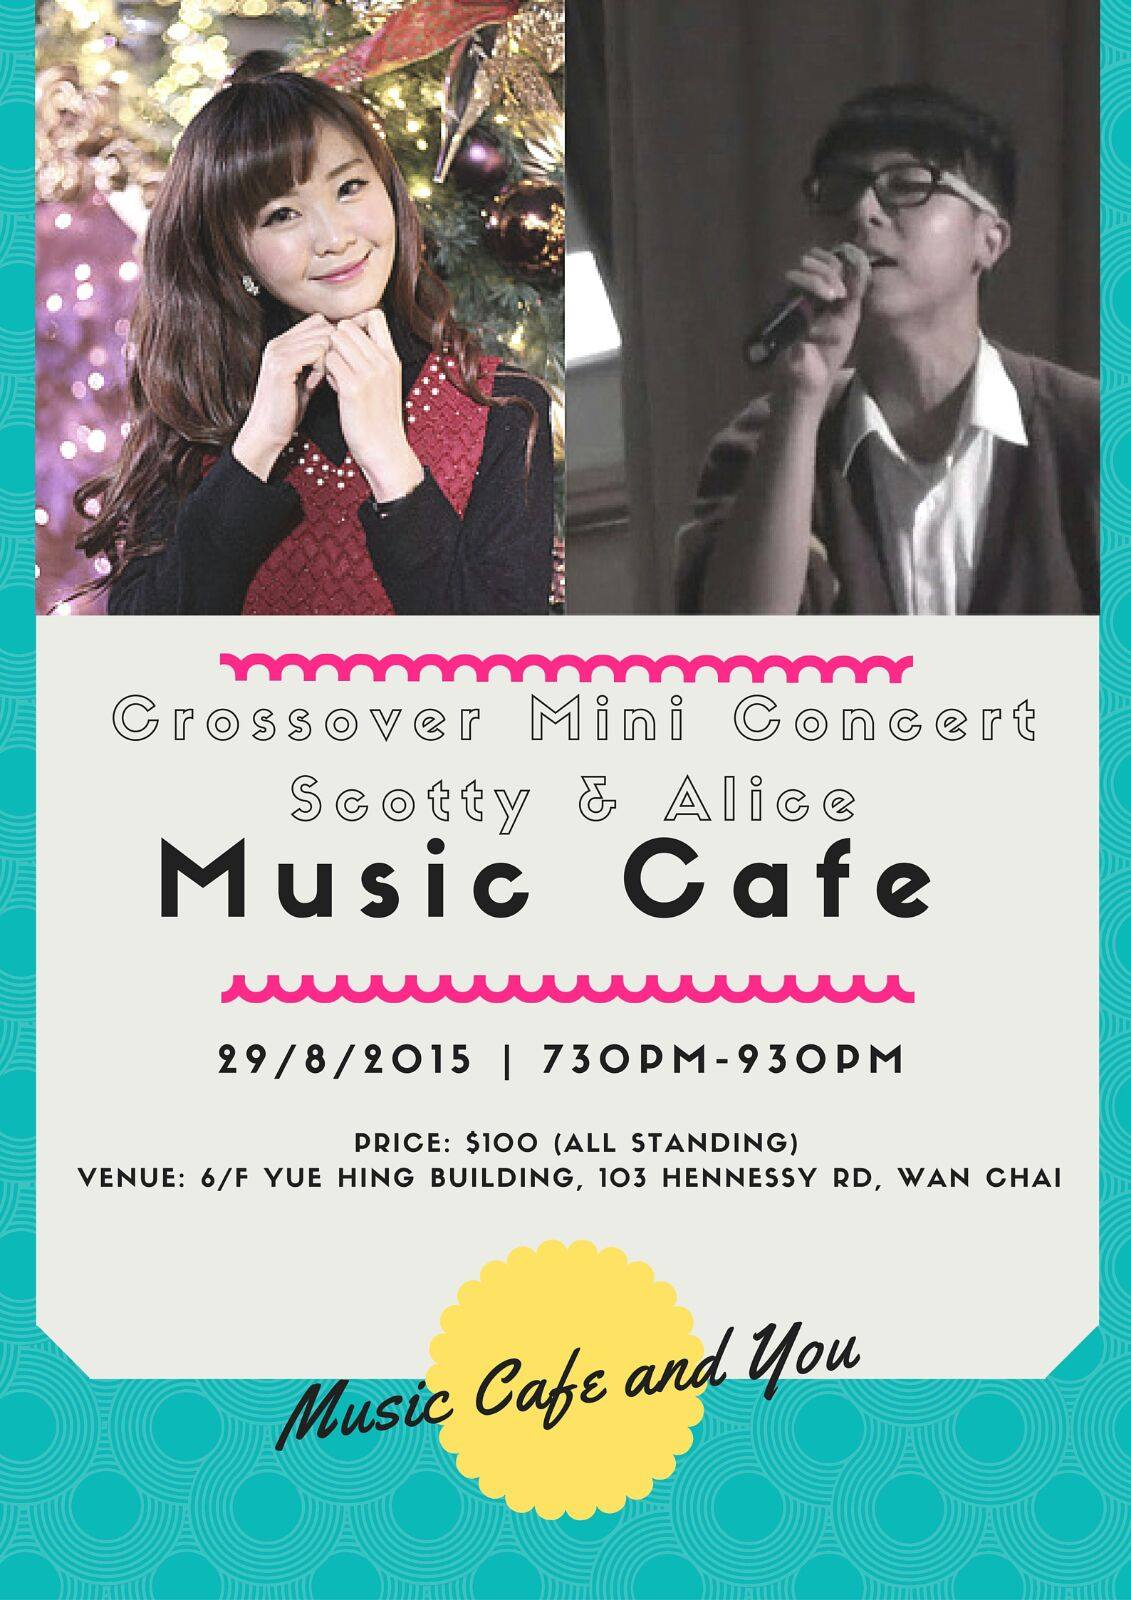 Music Cafe Mini Concert